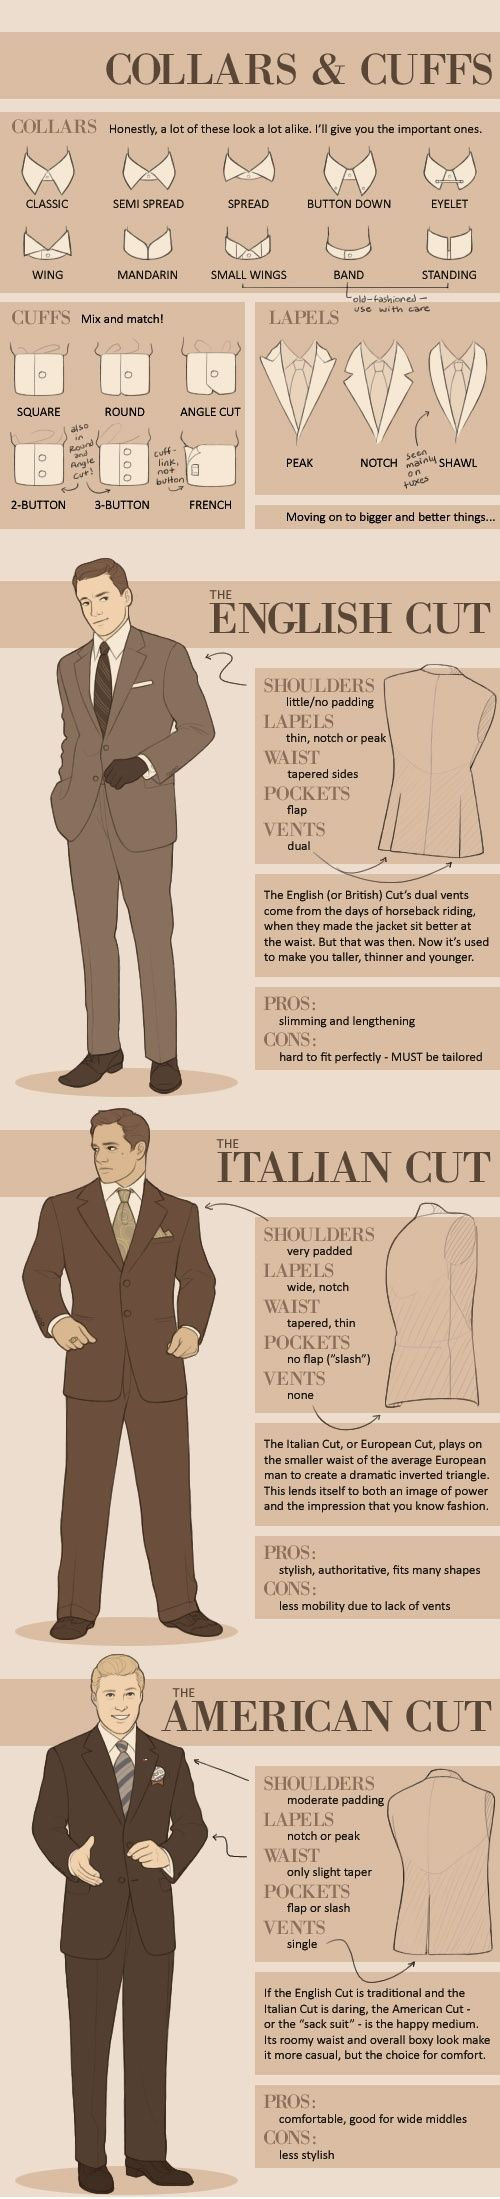 Collars & Cuffs / Men's Suits: Cuts From a female's perspective, I